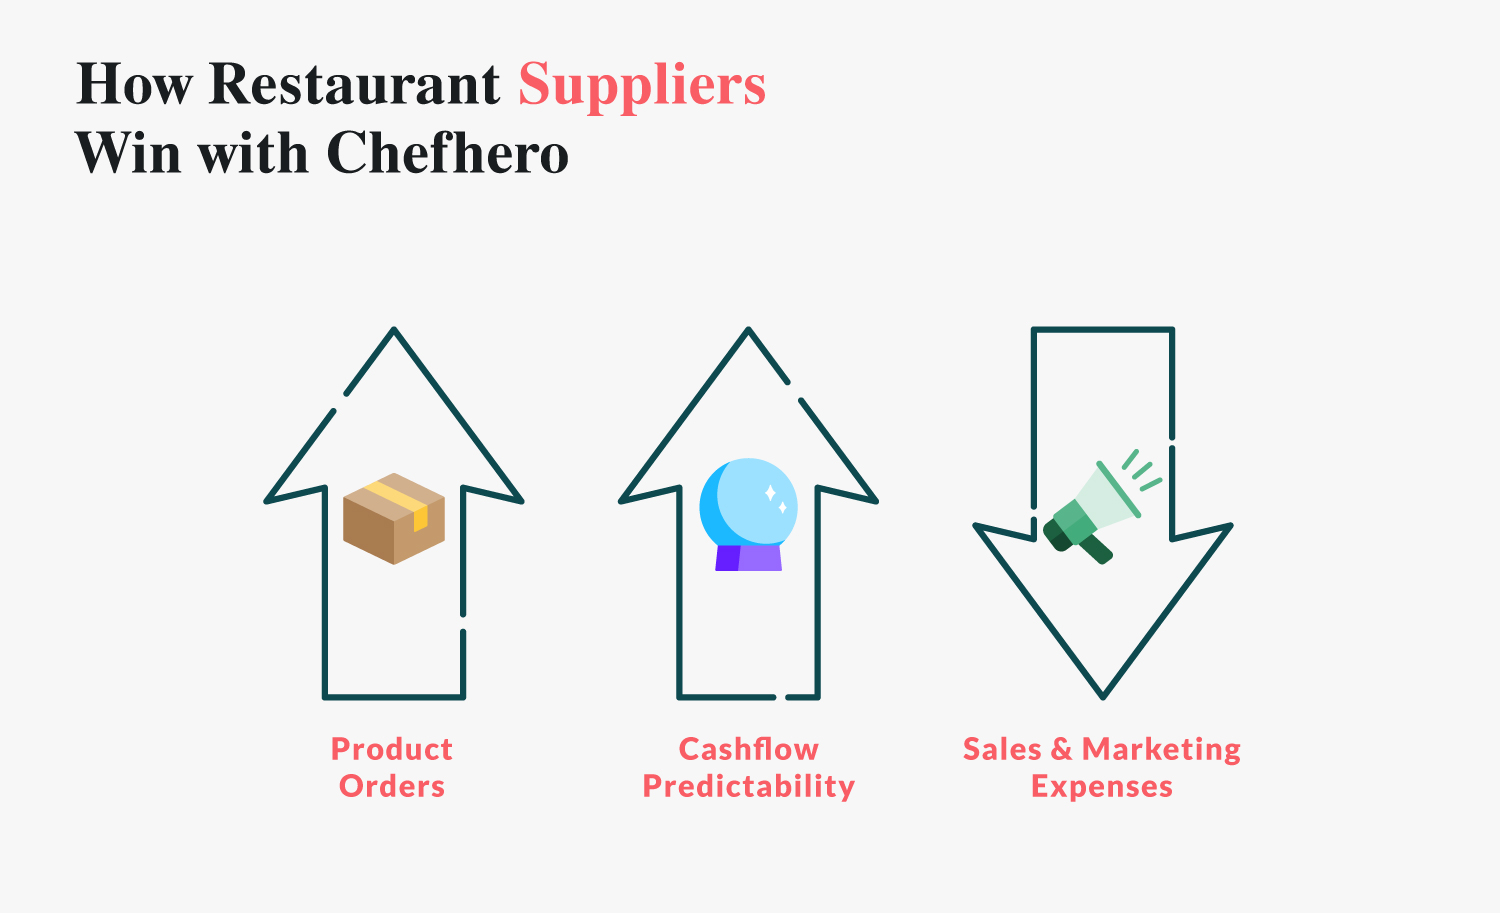 How Restaurant Suppliers Win